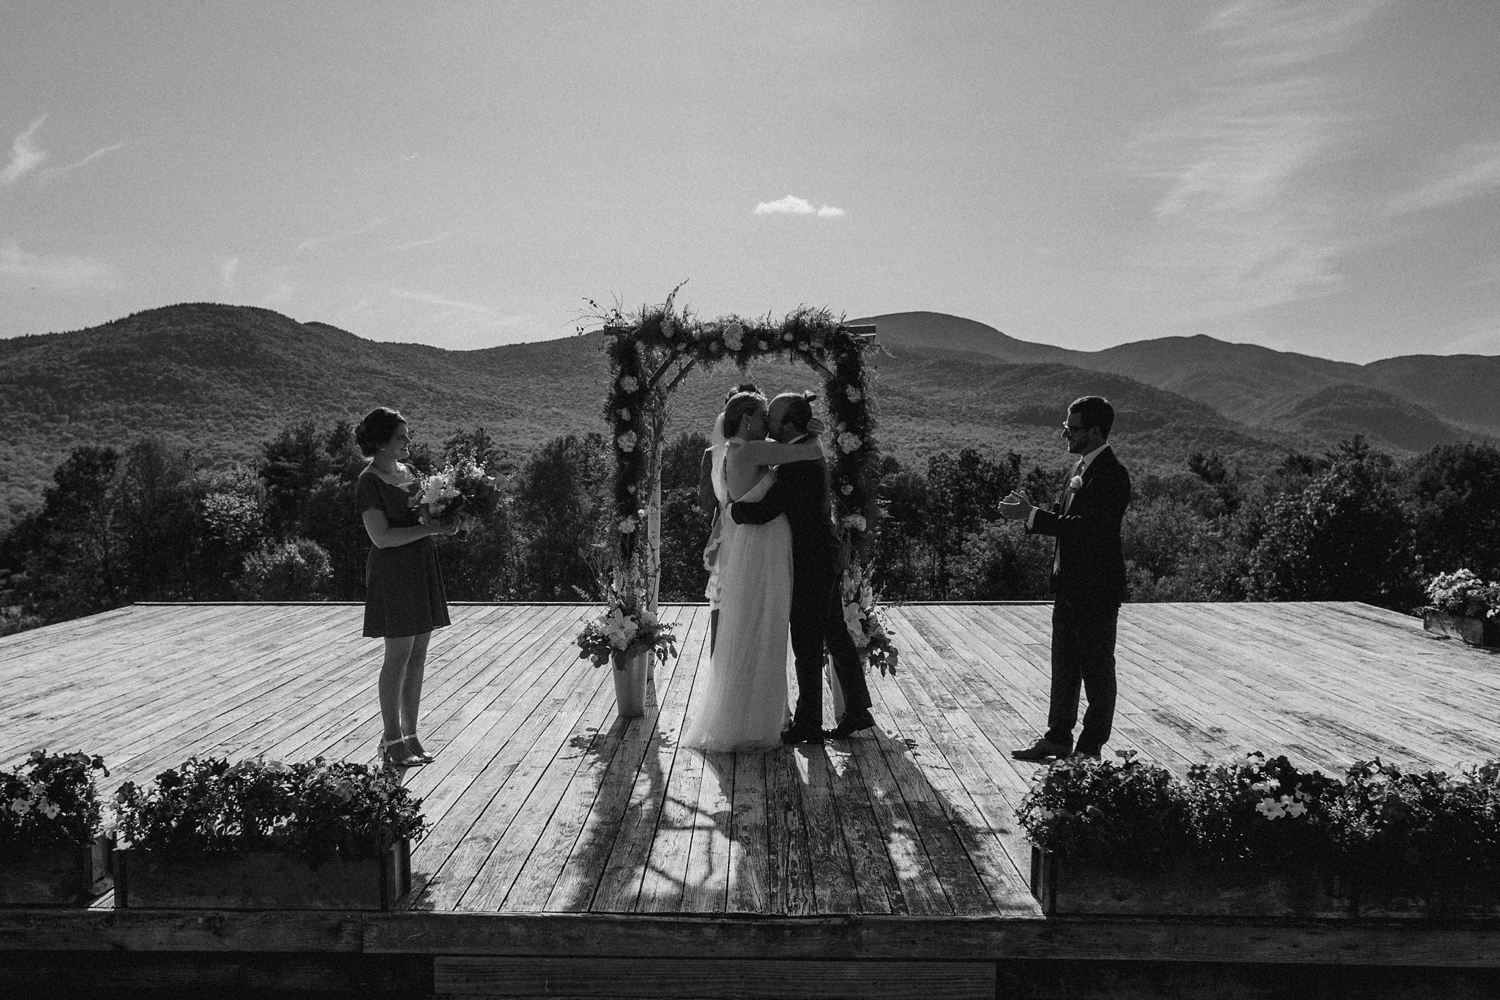 Couple kiss during ceremony in Vermont wedding.